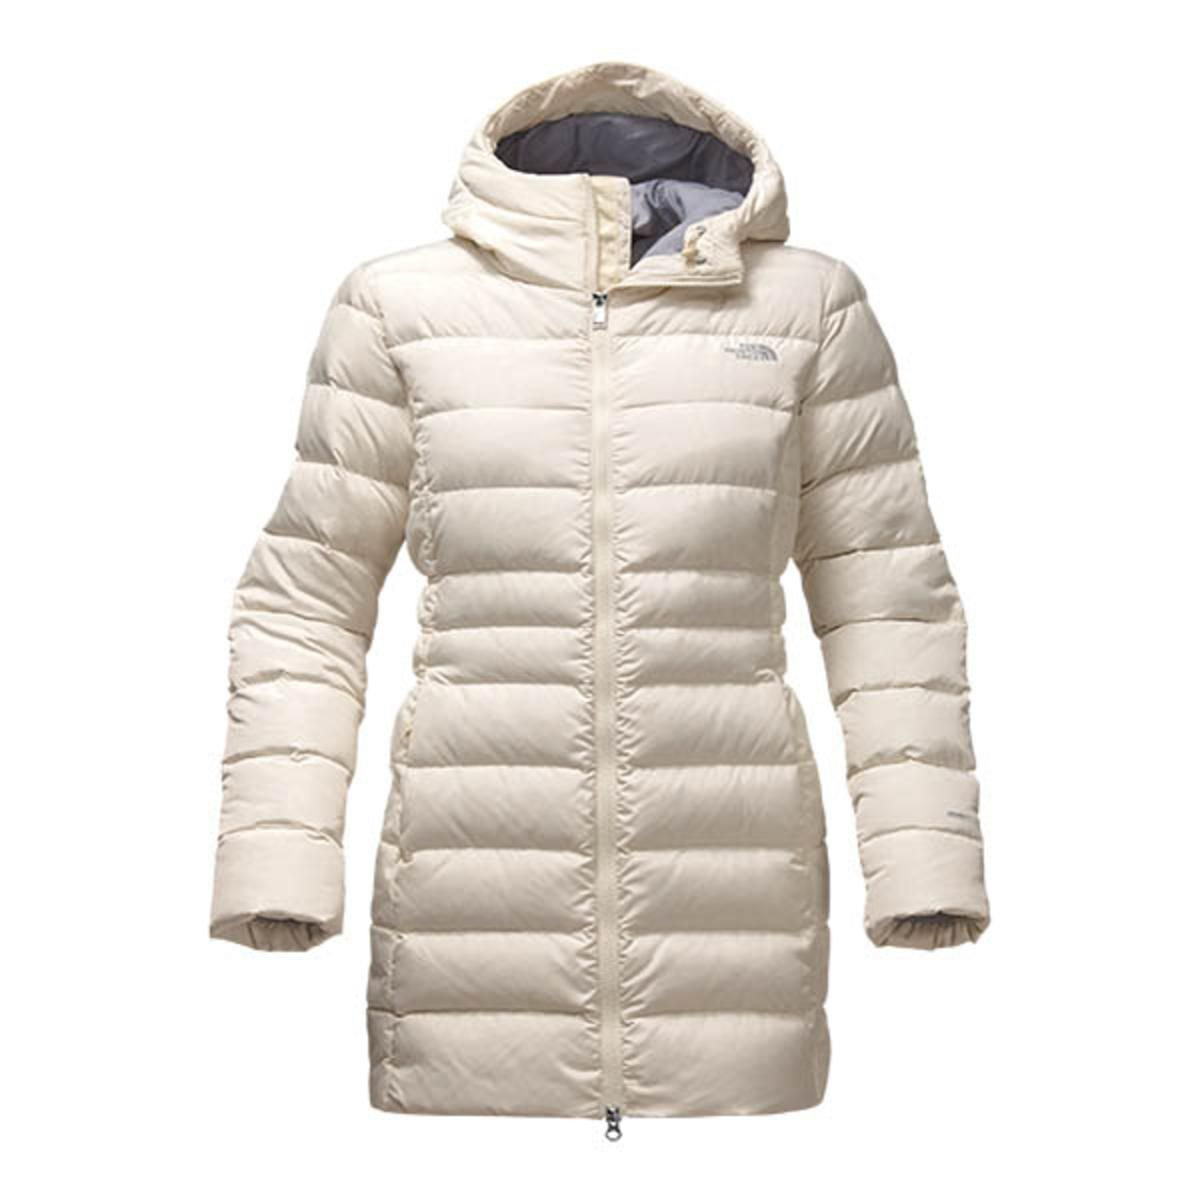 36f4ea100 The North Face Women's Gotham Parka II Jacket - The Warming Store